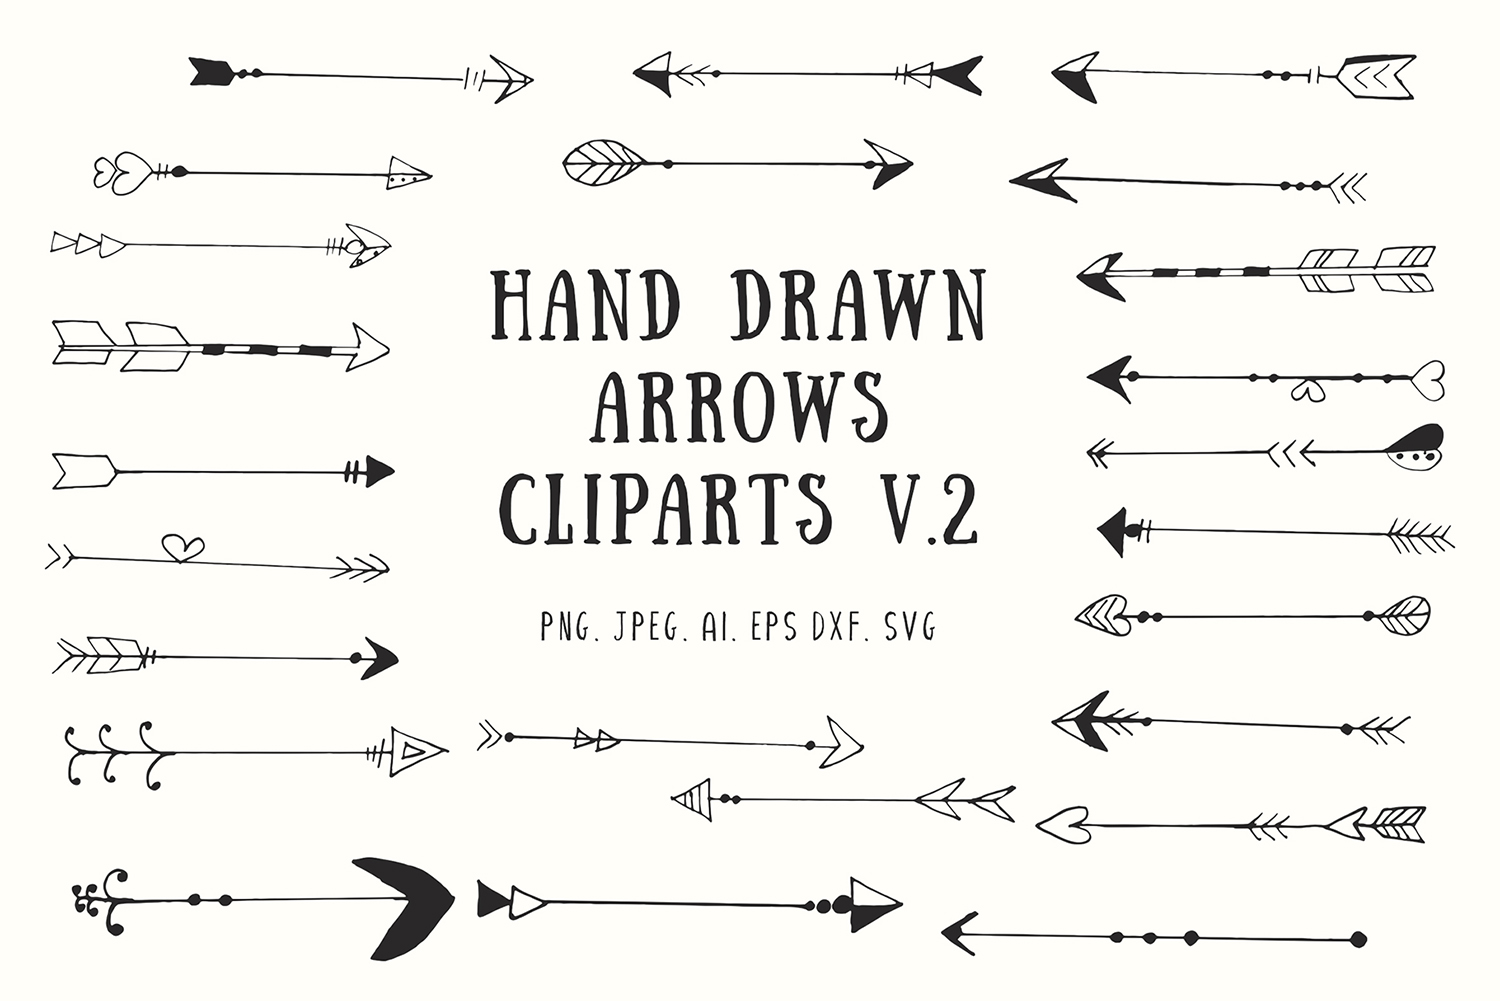 25 Handdrawn Arrows Clipart Ver 2 Graphic By Creative Tacos